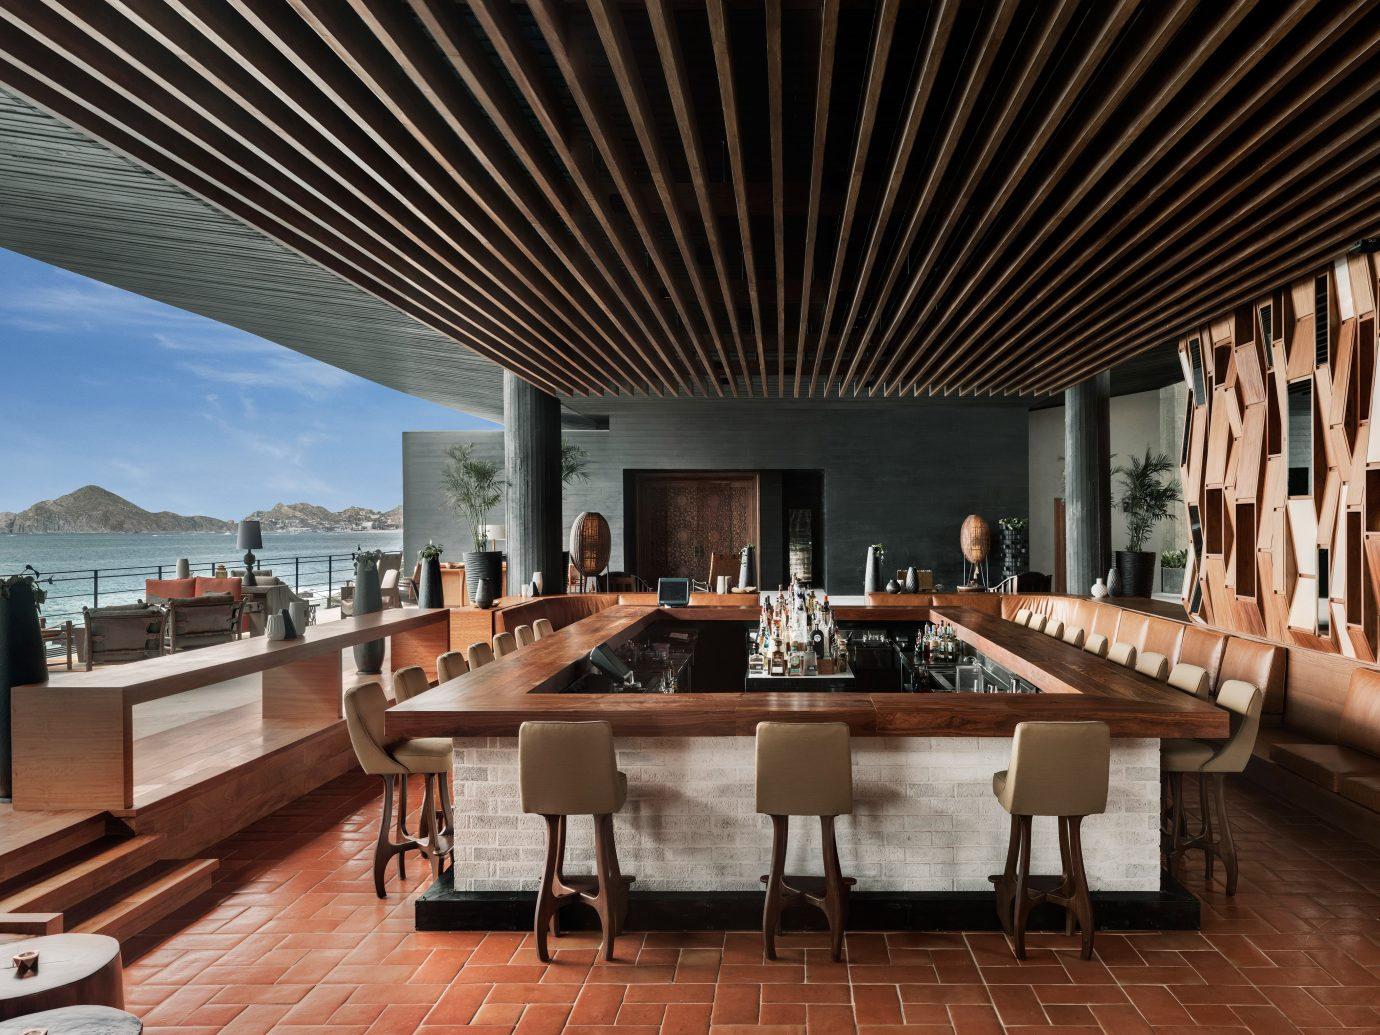 Dining Drink Eat Hip Hotels Modern Nightlife Rooftop Scenic views Trip Ideas Tropical Waterfront floor indoor table chair room Living Architecture Resort estate interior design Lobby convention center furniture function hall restaurant wood